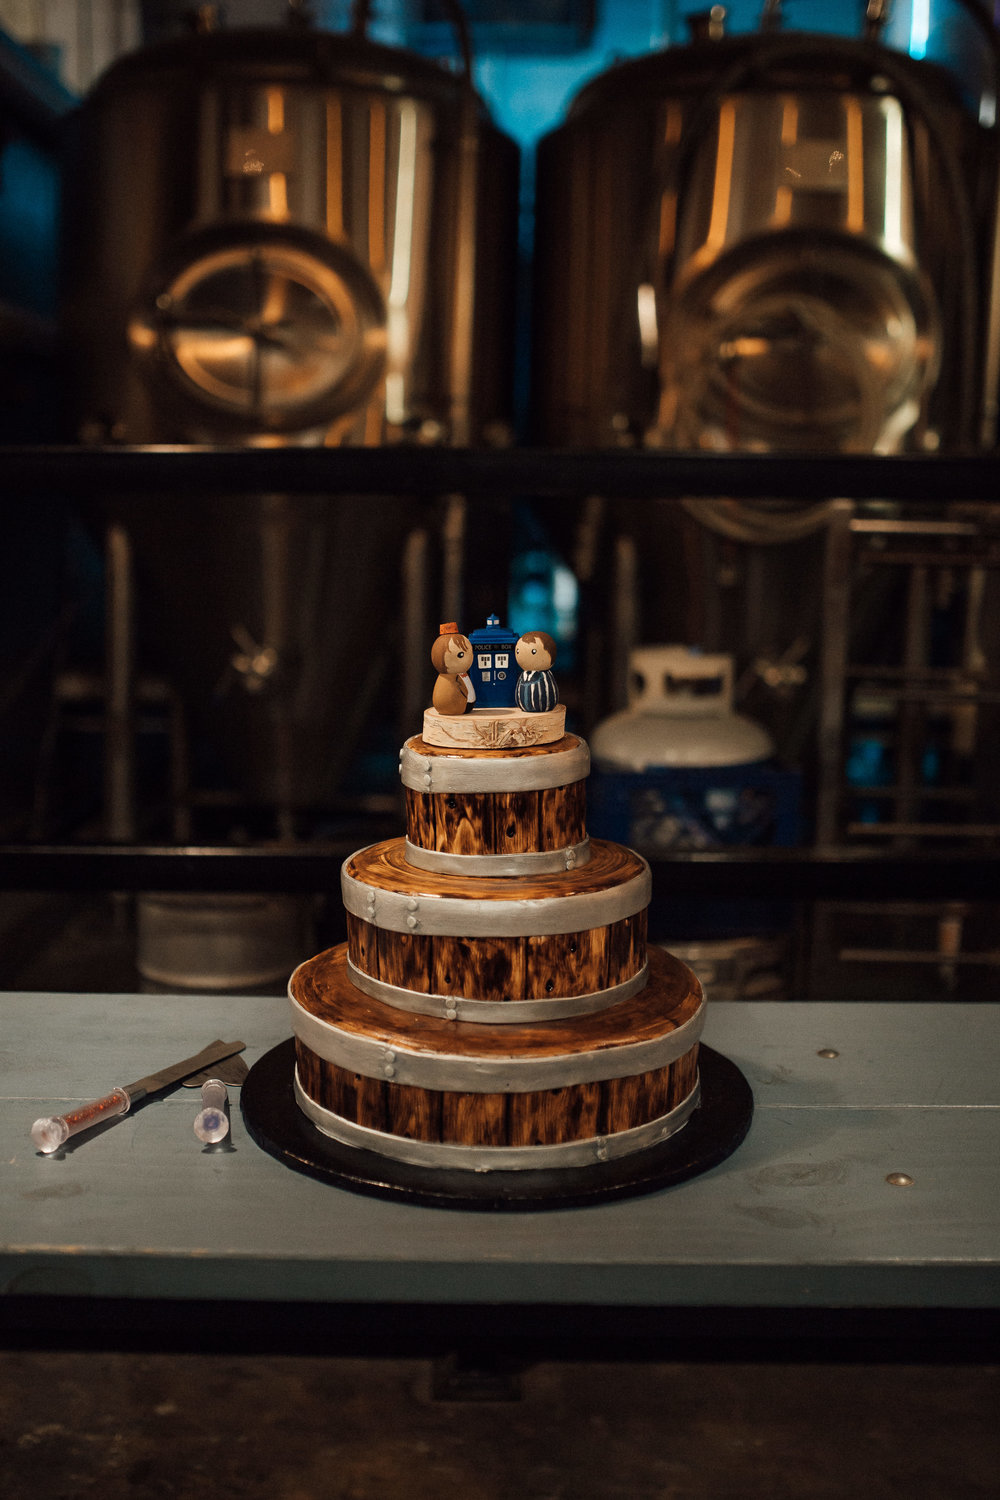 dr-who-wedding-cake-unique-wedding-cake-nerdy-wedding